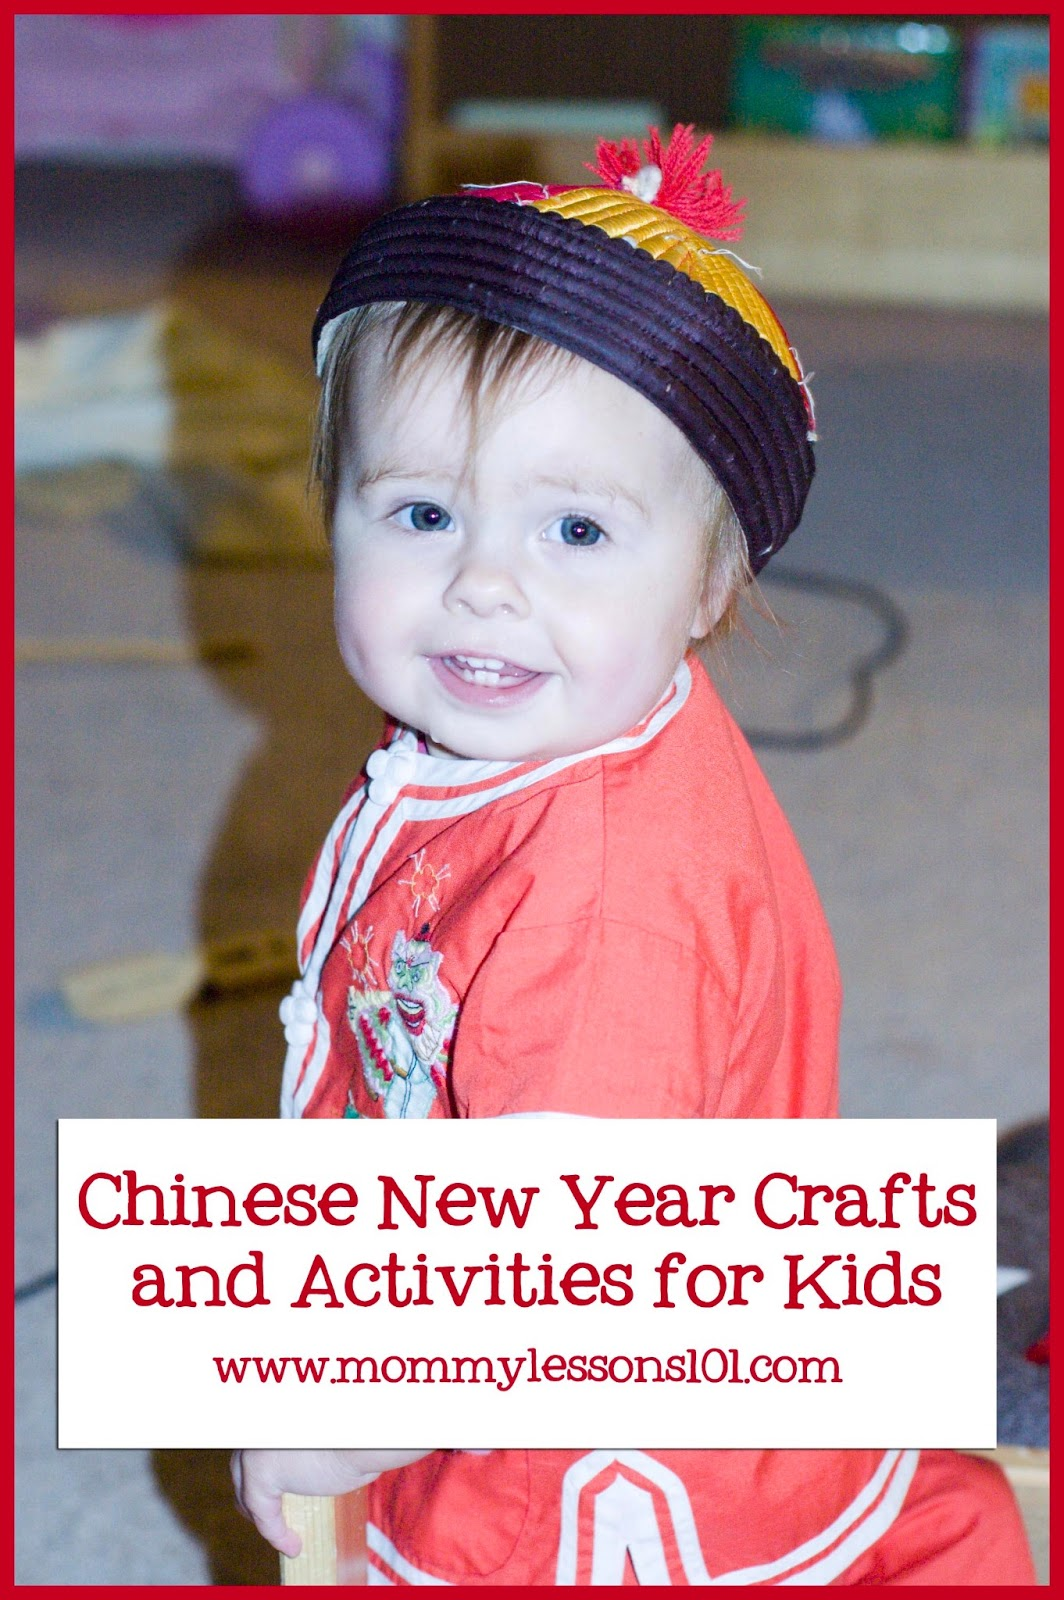 Mommy Lessons 101 Chinese New Year Crafts Books And